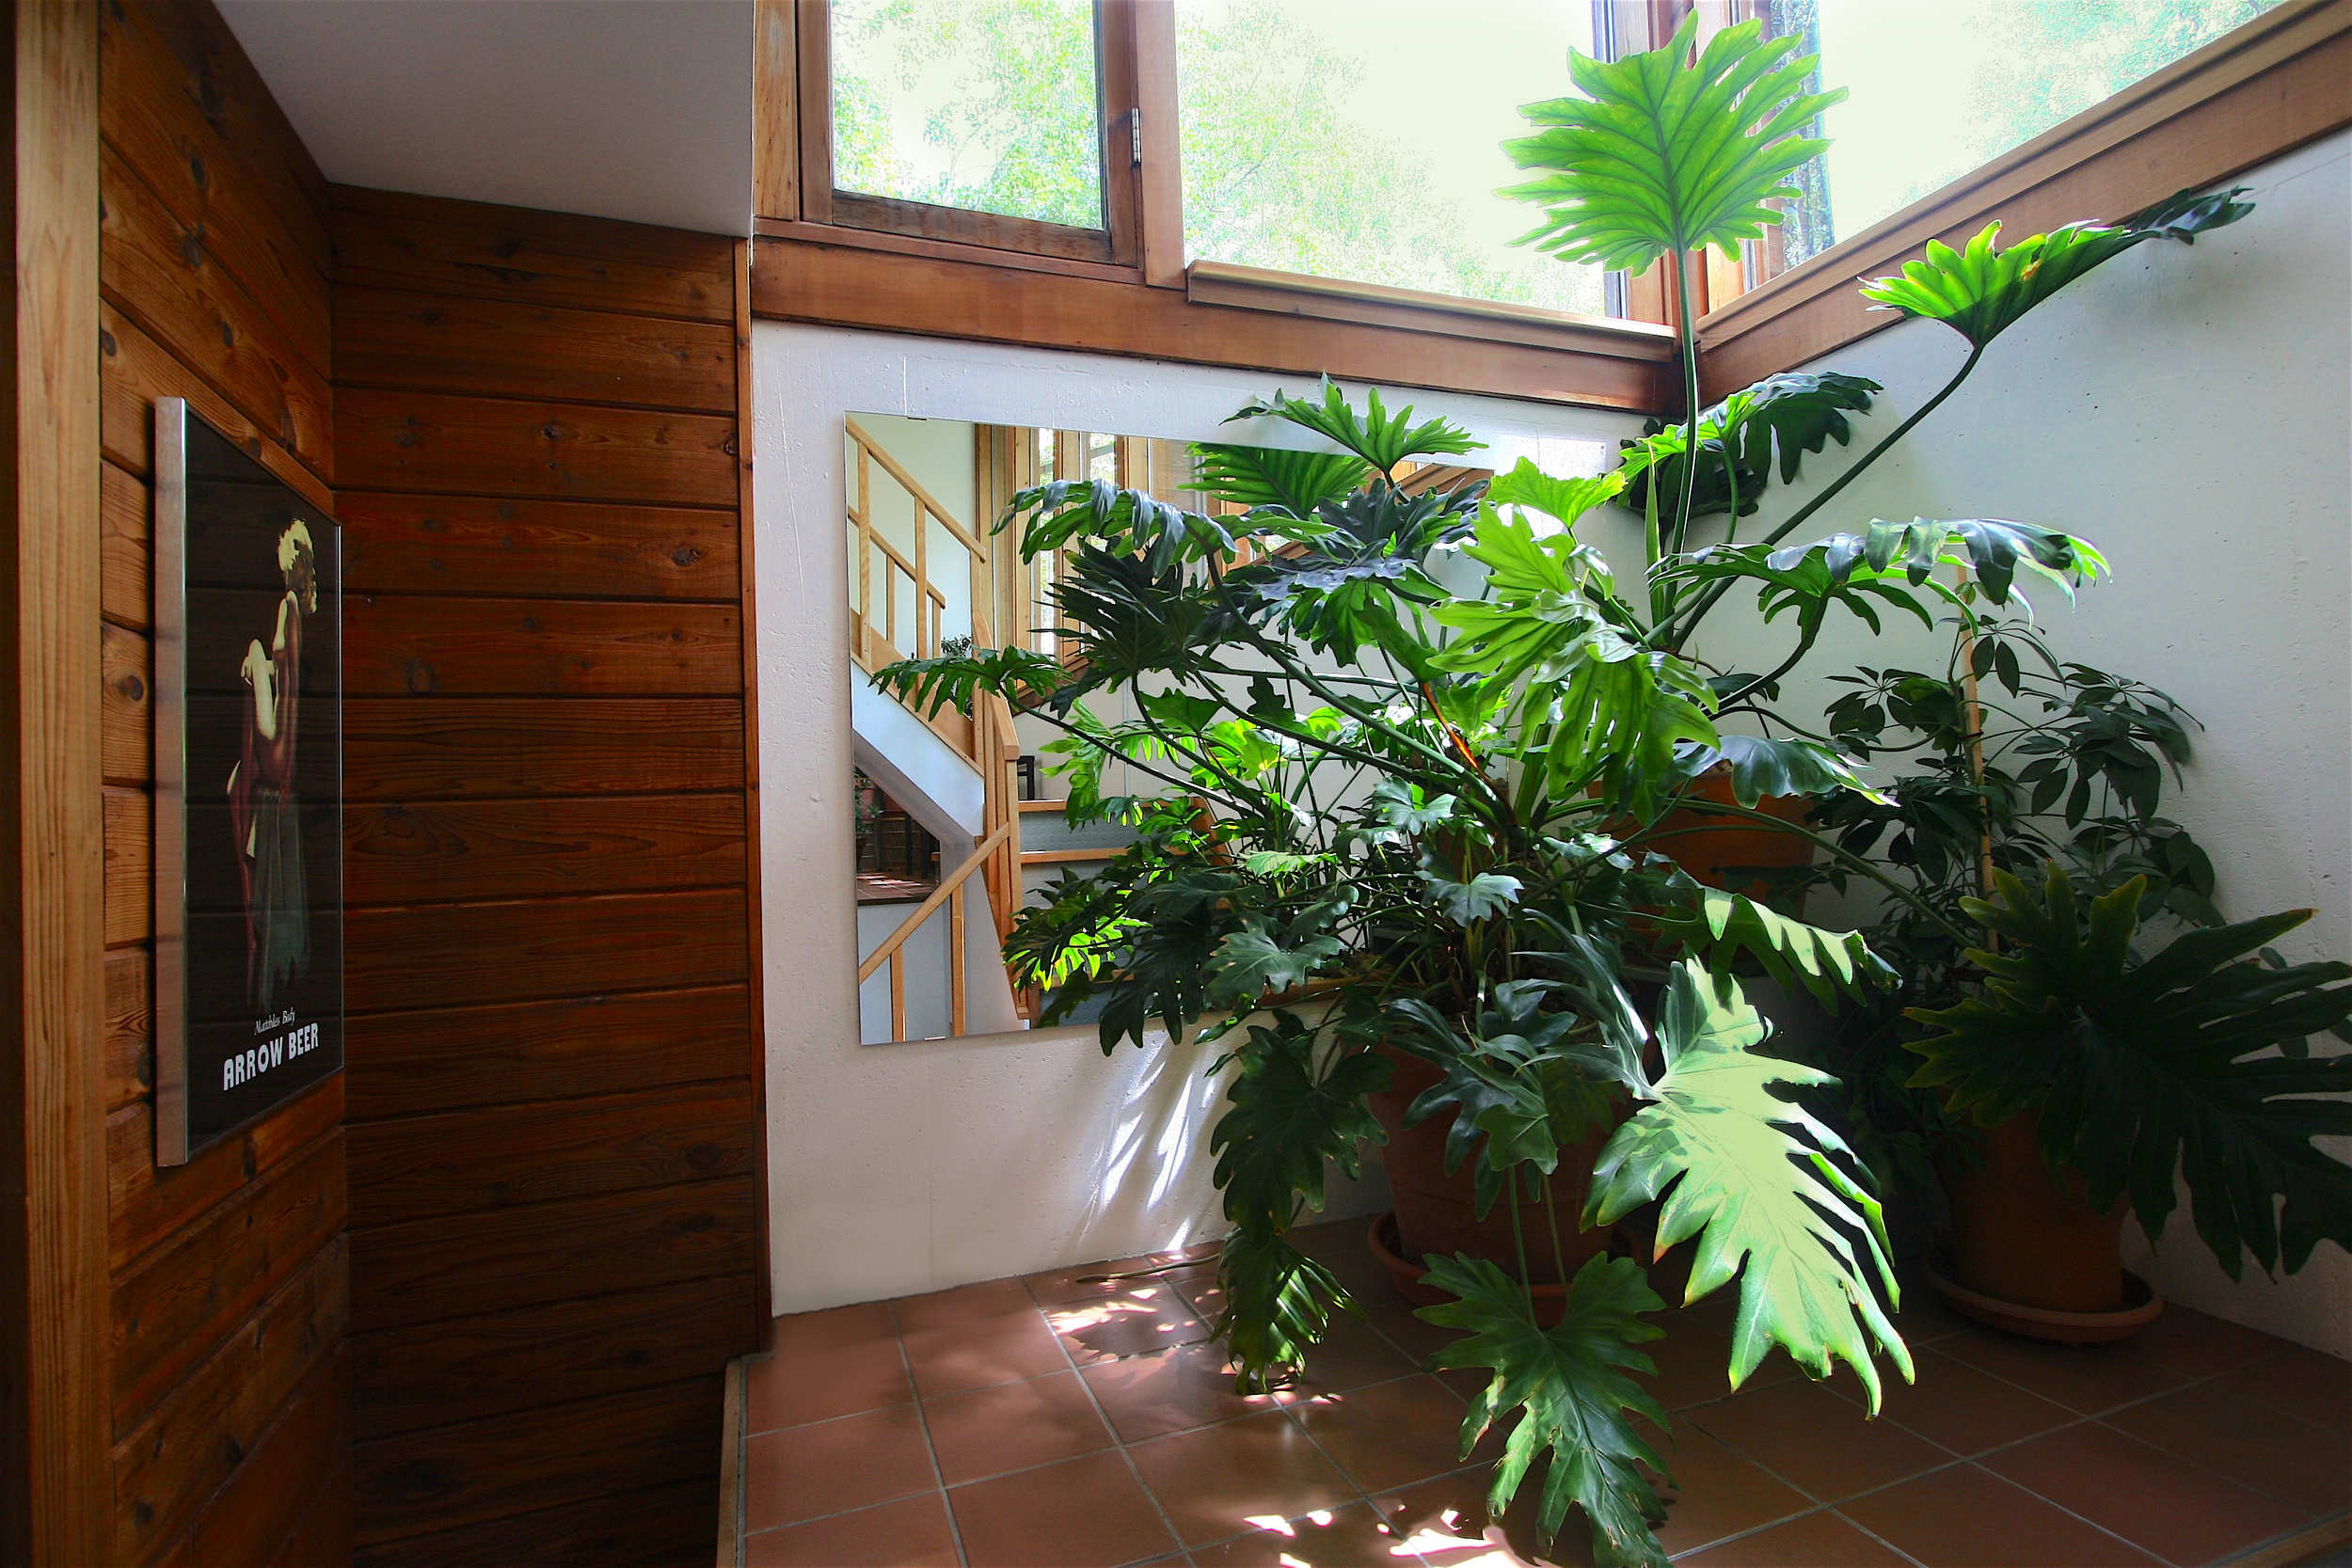 The  greenspace  is exactly what the name implies... a space to nurture and grow your choice of flora on a year-round basis. (The cedar-panelled wall on the left is the wood-chute, holding a week's worth of winter firewood which is loaded through a locking door on the east side of the house).